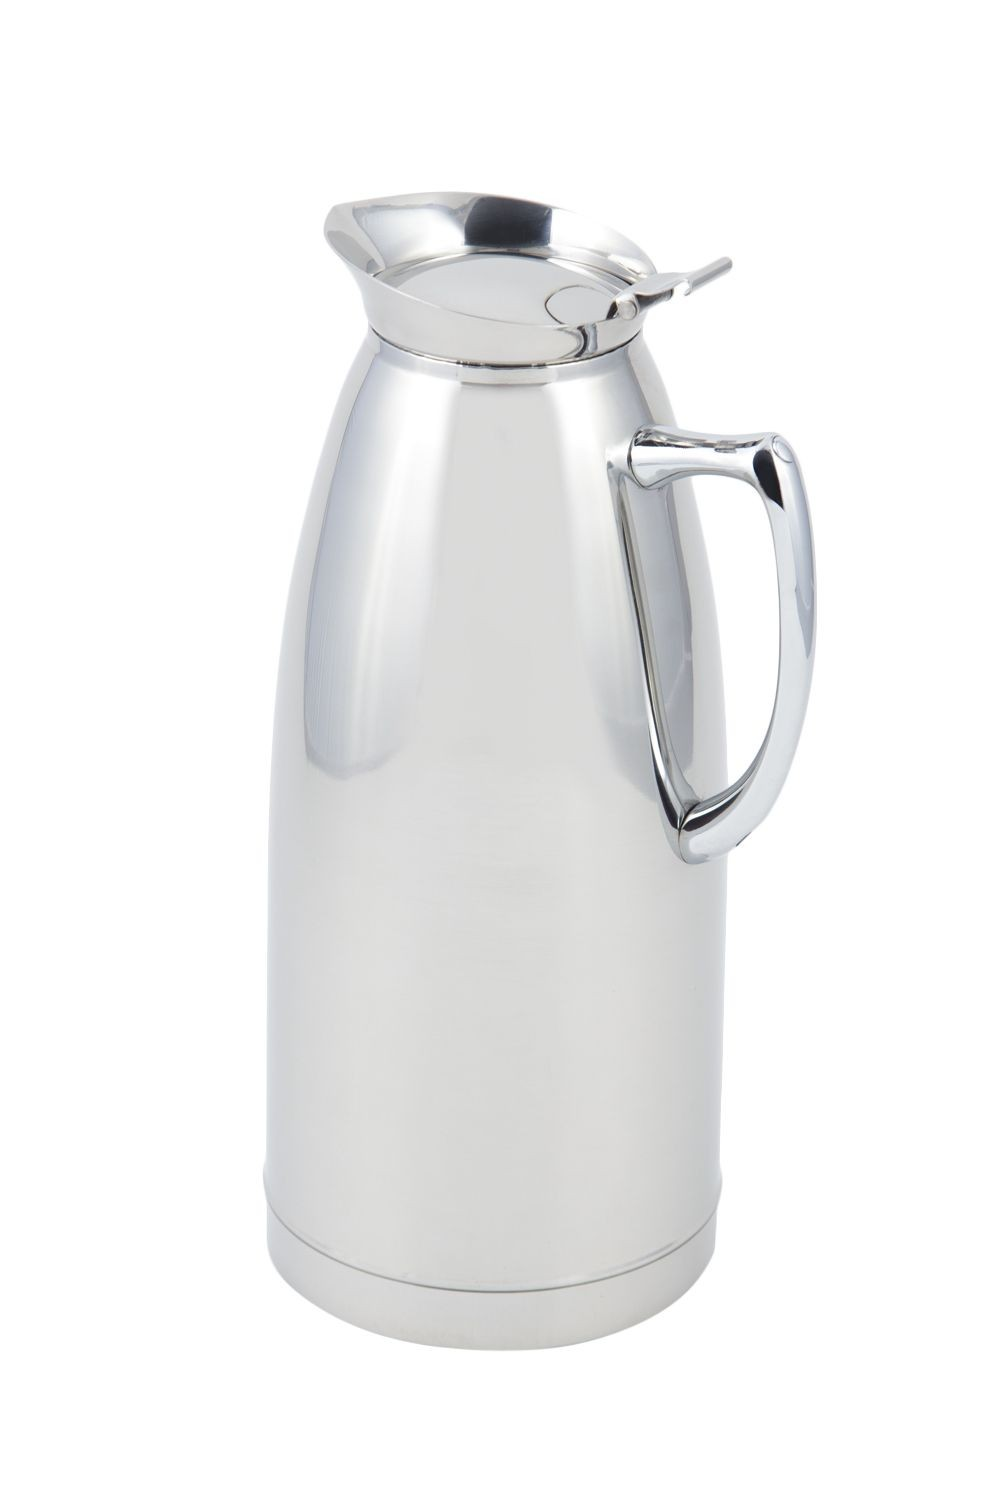 Bon Chef 4053 Stainless Steel Insulated Server, 64 oz., Set of 6